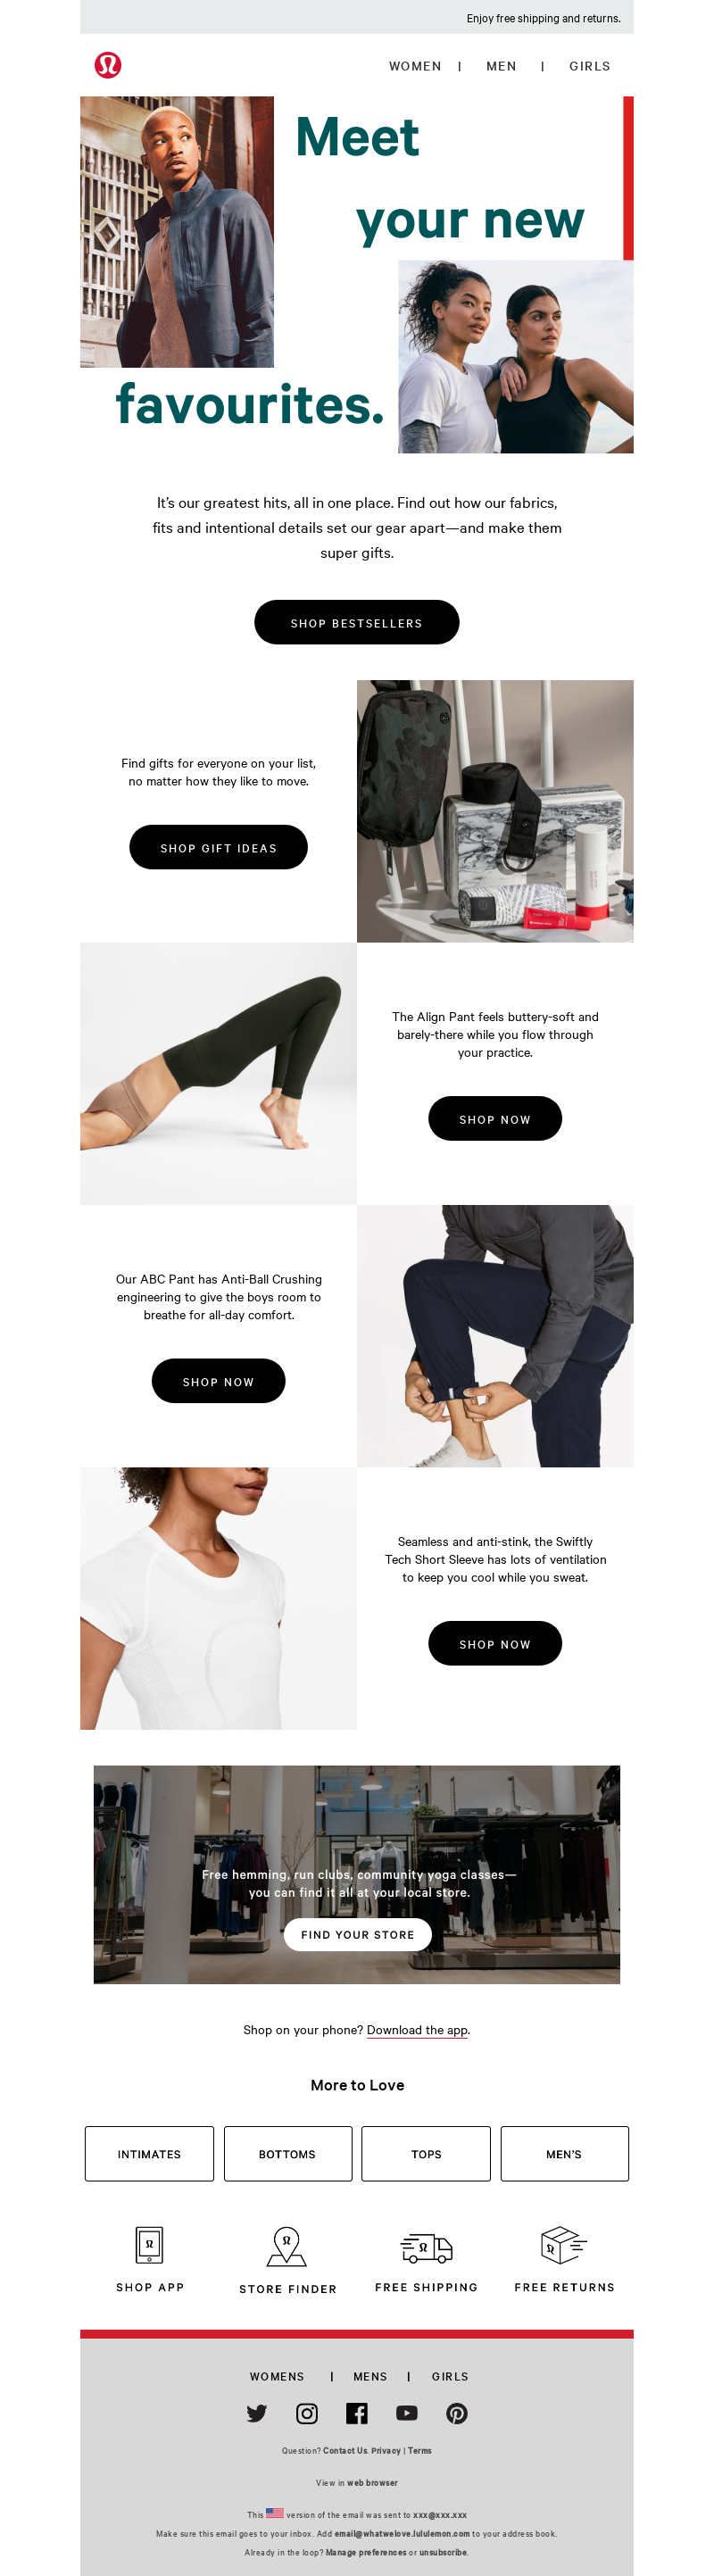 Onboarding email template from Lululemon